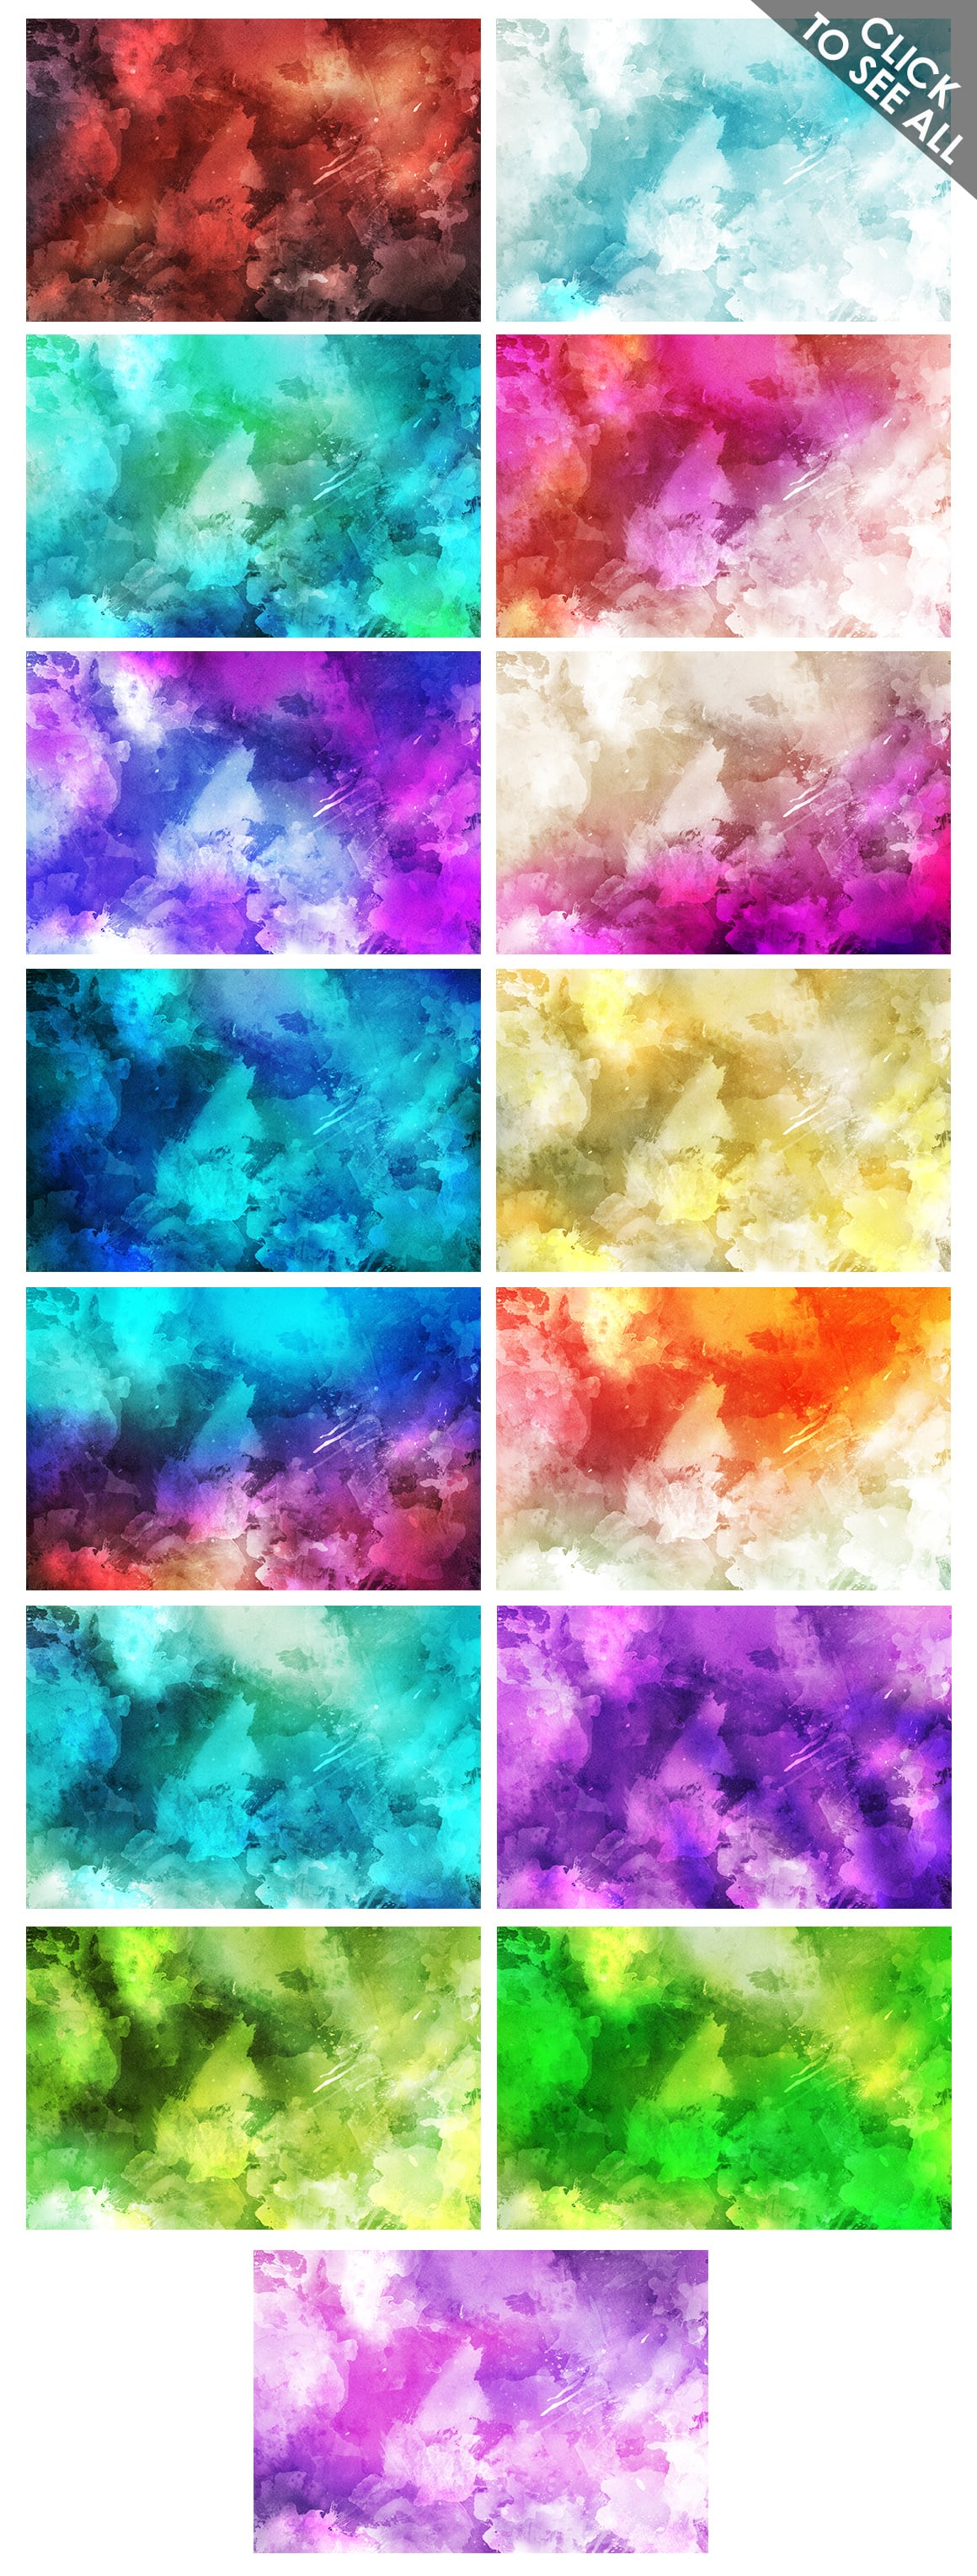 540+ Watercolor Backgrounds Bundle - 544 Items. Only $18! - watercolor backgrounds prev 2